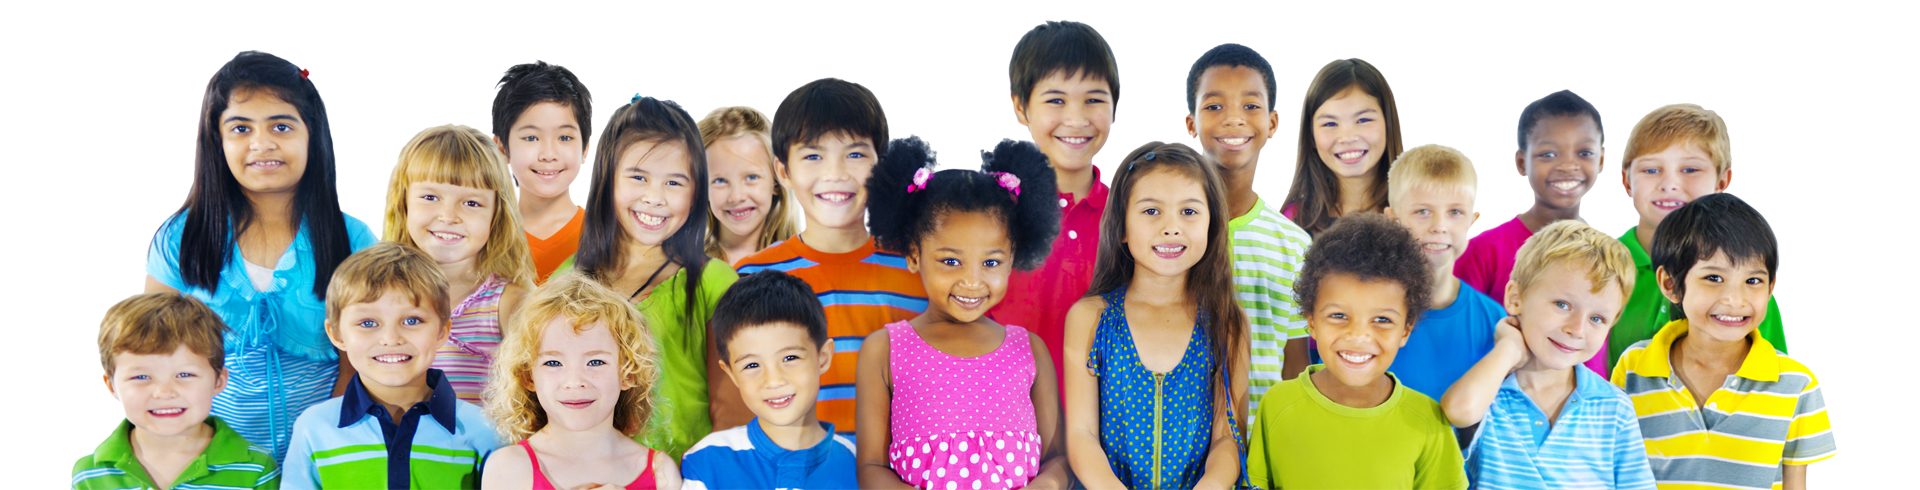 Find approved providers of orthodontic treatment with braces for kids on public aid, medicaid, medical card, tarjeta medica and all kids in illinois